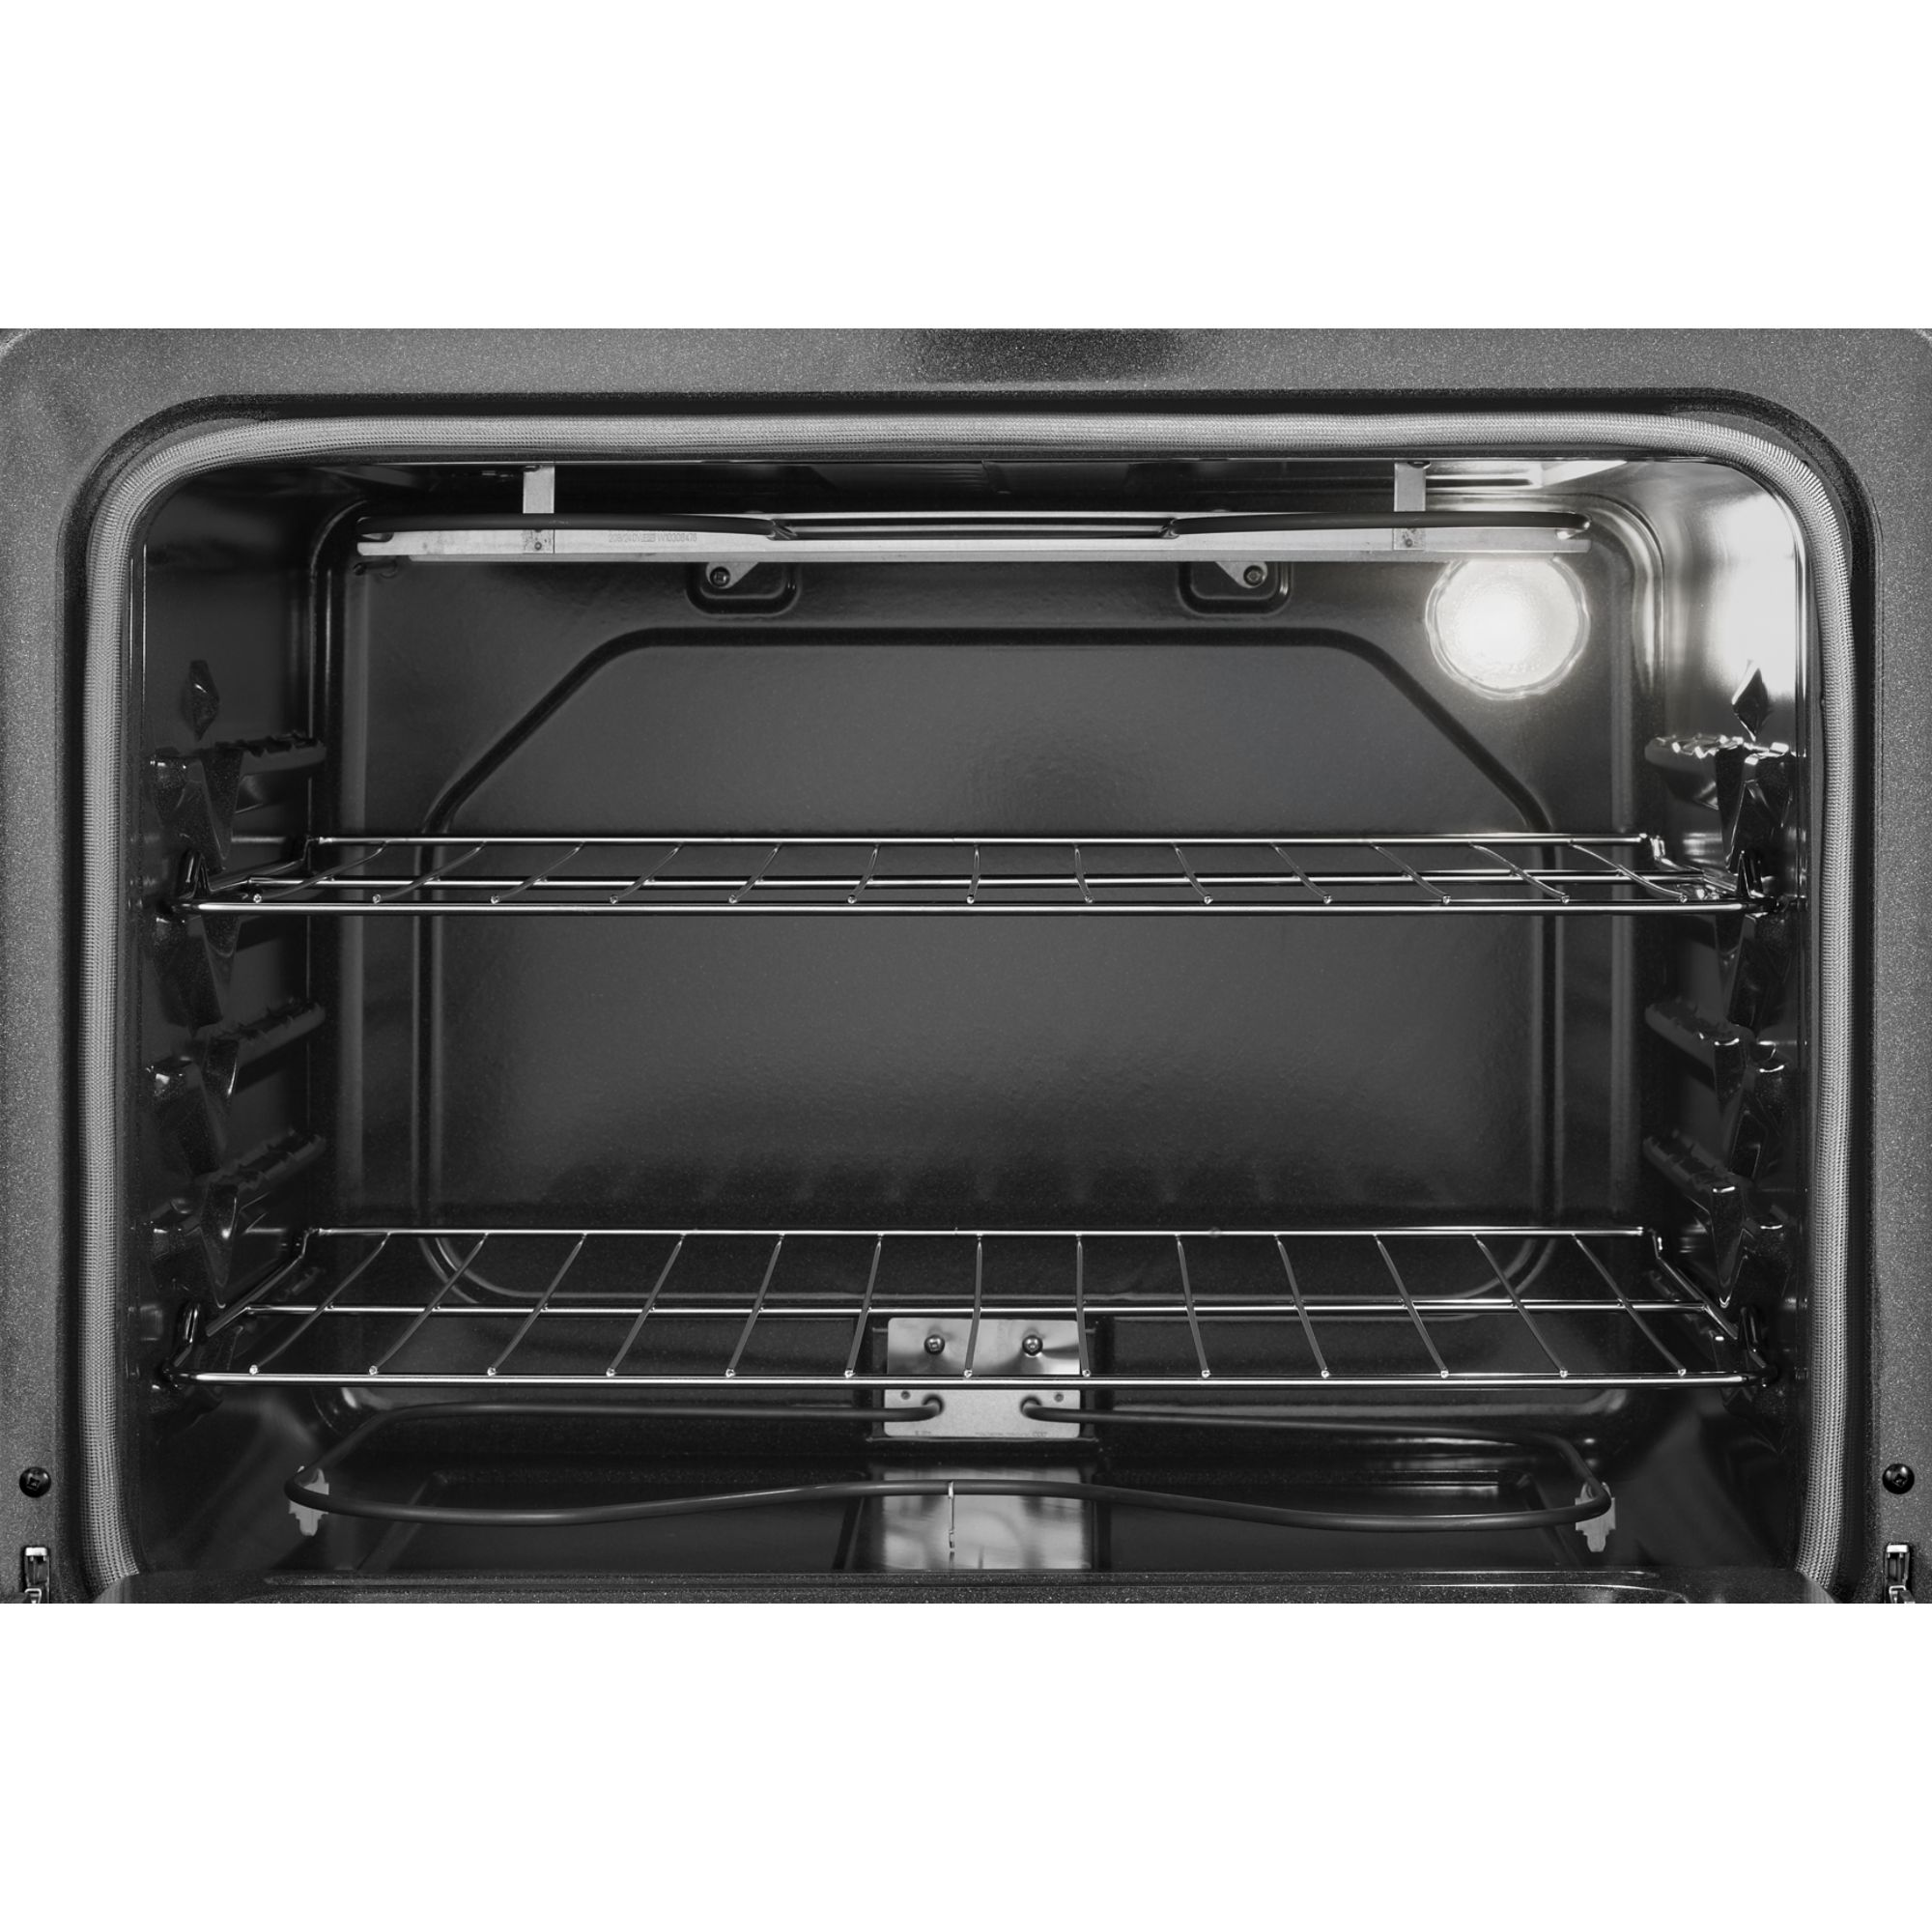 Whirlpool 4.8 cu. ft. Self-Cleaning Electric Range - Stainless Steel